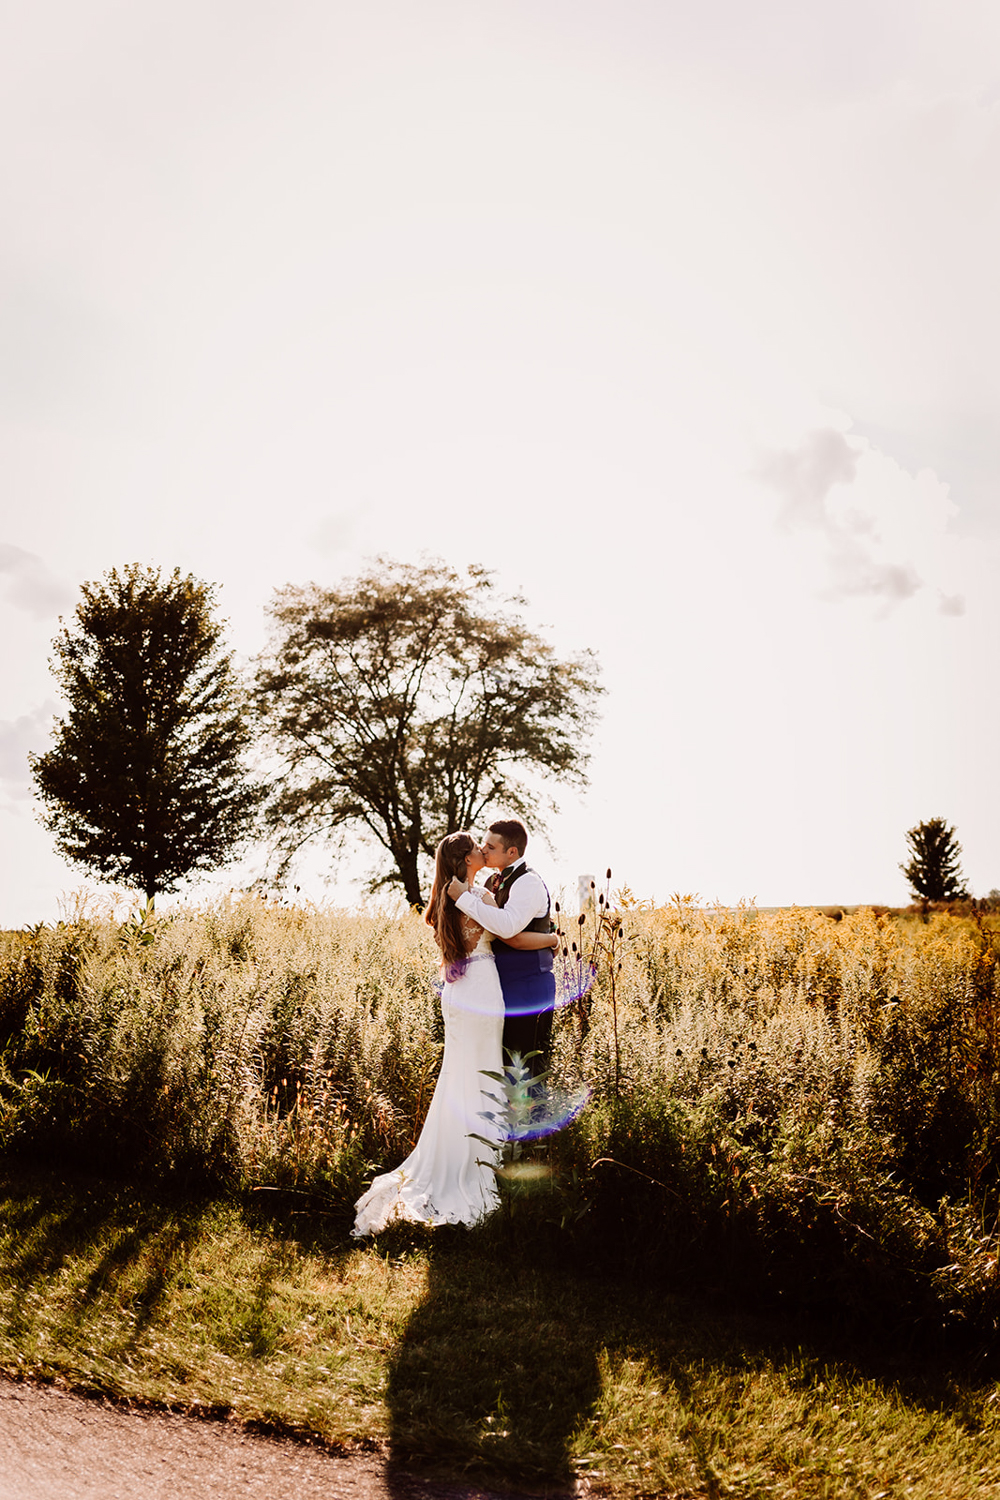 TaylorLaurenPhoto_Columbus_Ohio_Wedding_Engagement_Portrait_Photography-117.jpg